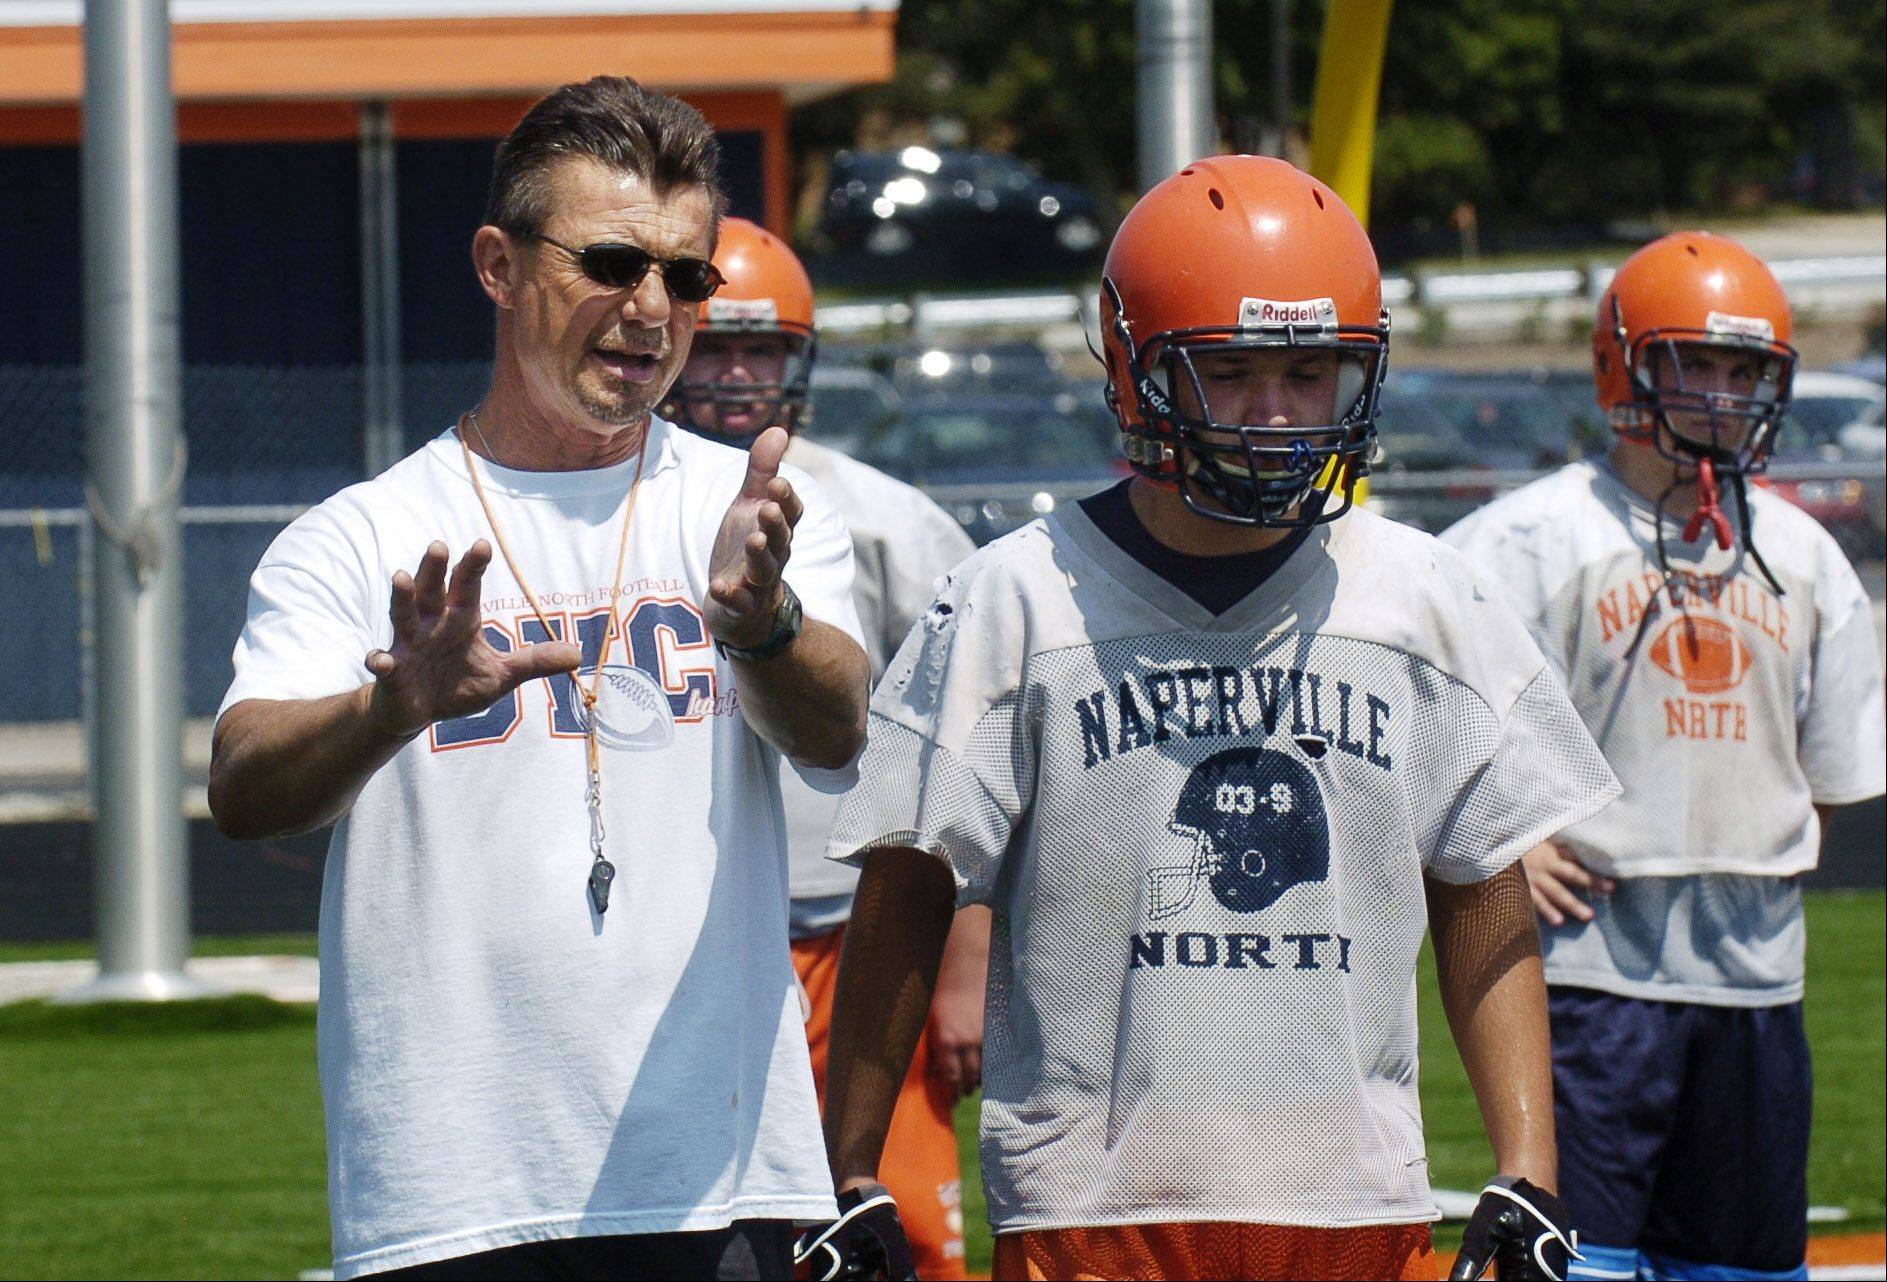 Head Coach Larry McKeon offers suggestions during practice. The Naperville North Huskies football team takes to its field resplendent with a new Field Turf artificial playing surface for the first time this year on Wednesday, August 12.